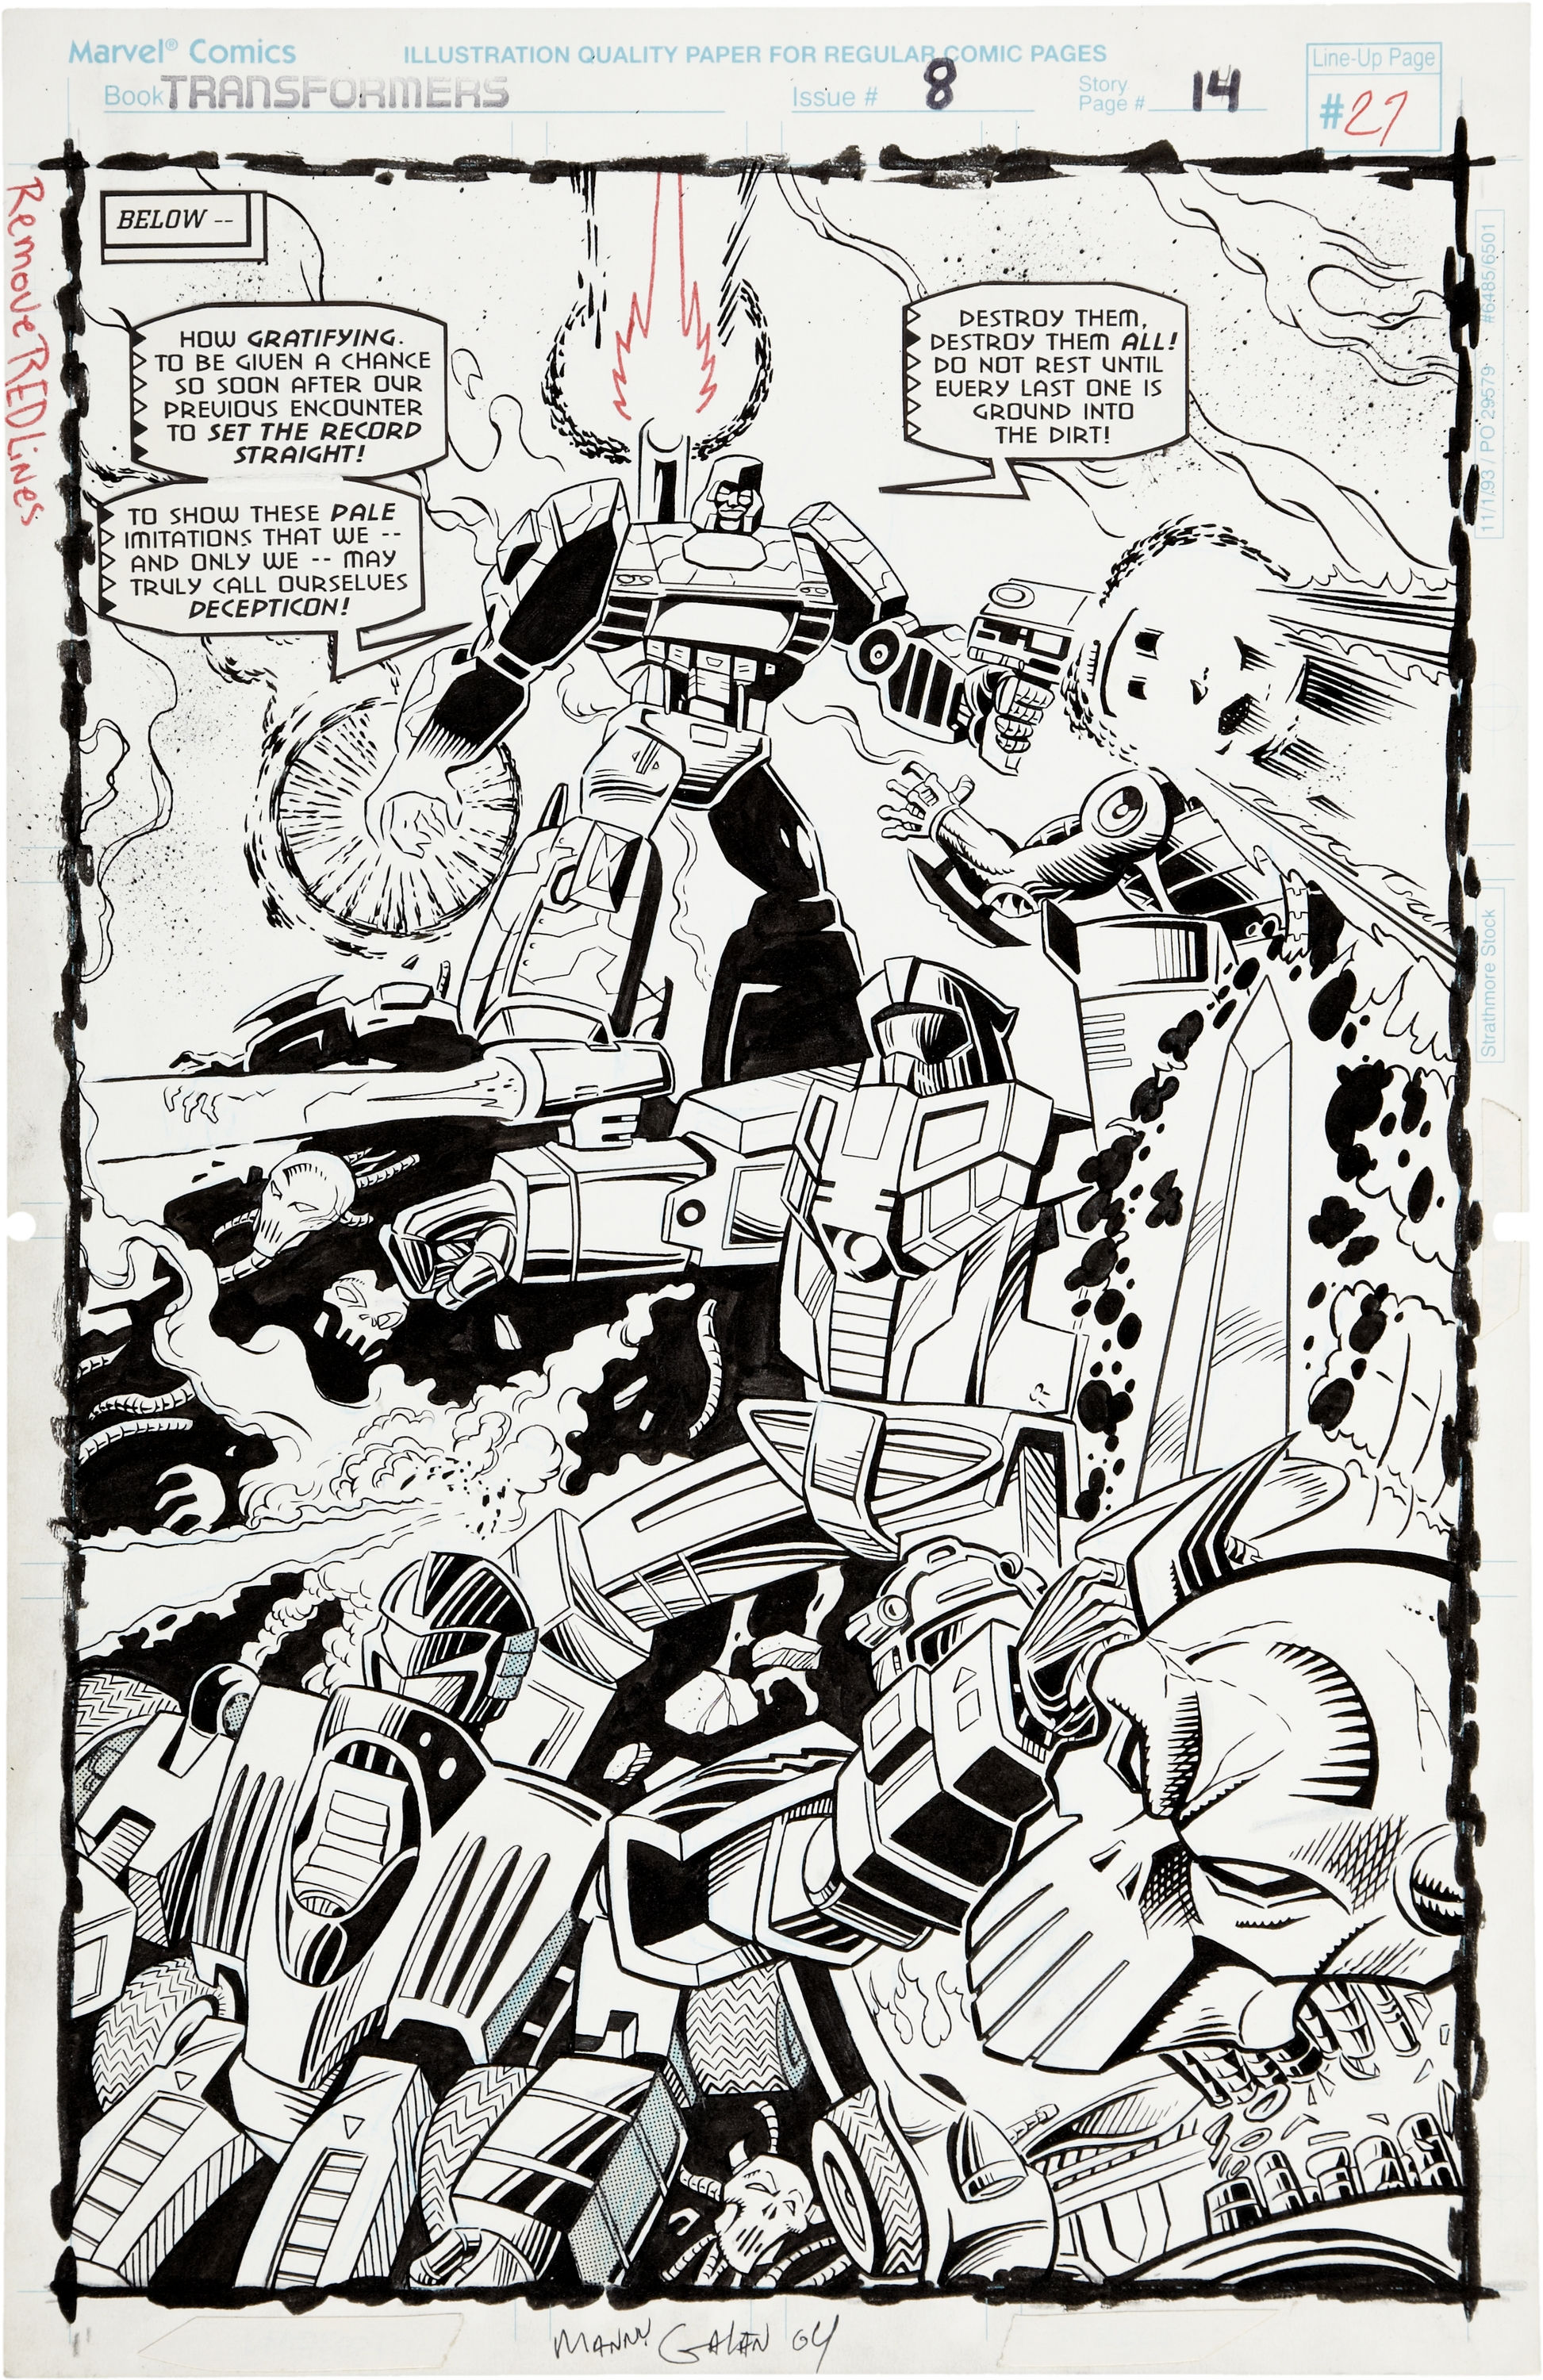 Be Nelson Yomtov! (Colorists, Tackle an Original Transformers Marvel Comics Page!)-manny-20galan-20transformers-20g2-2008-20page.jpg